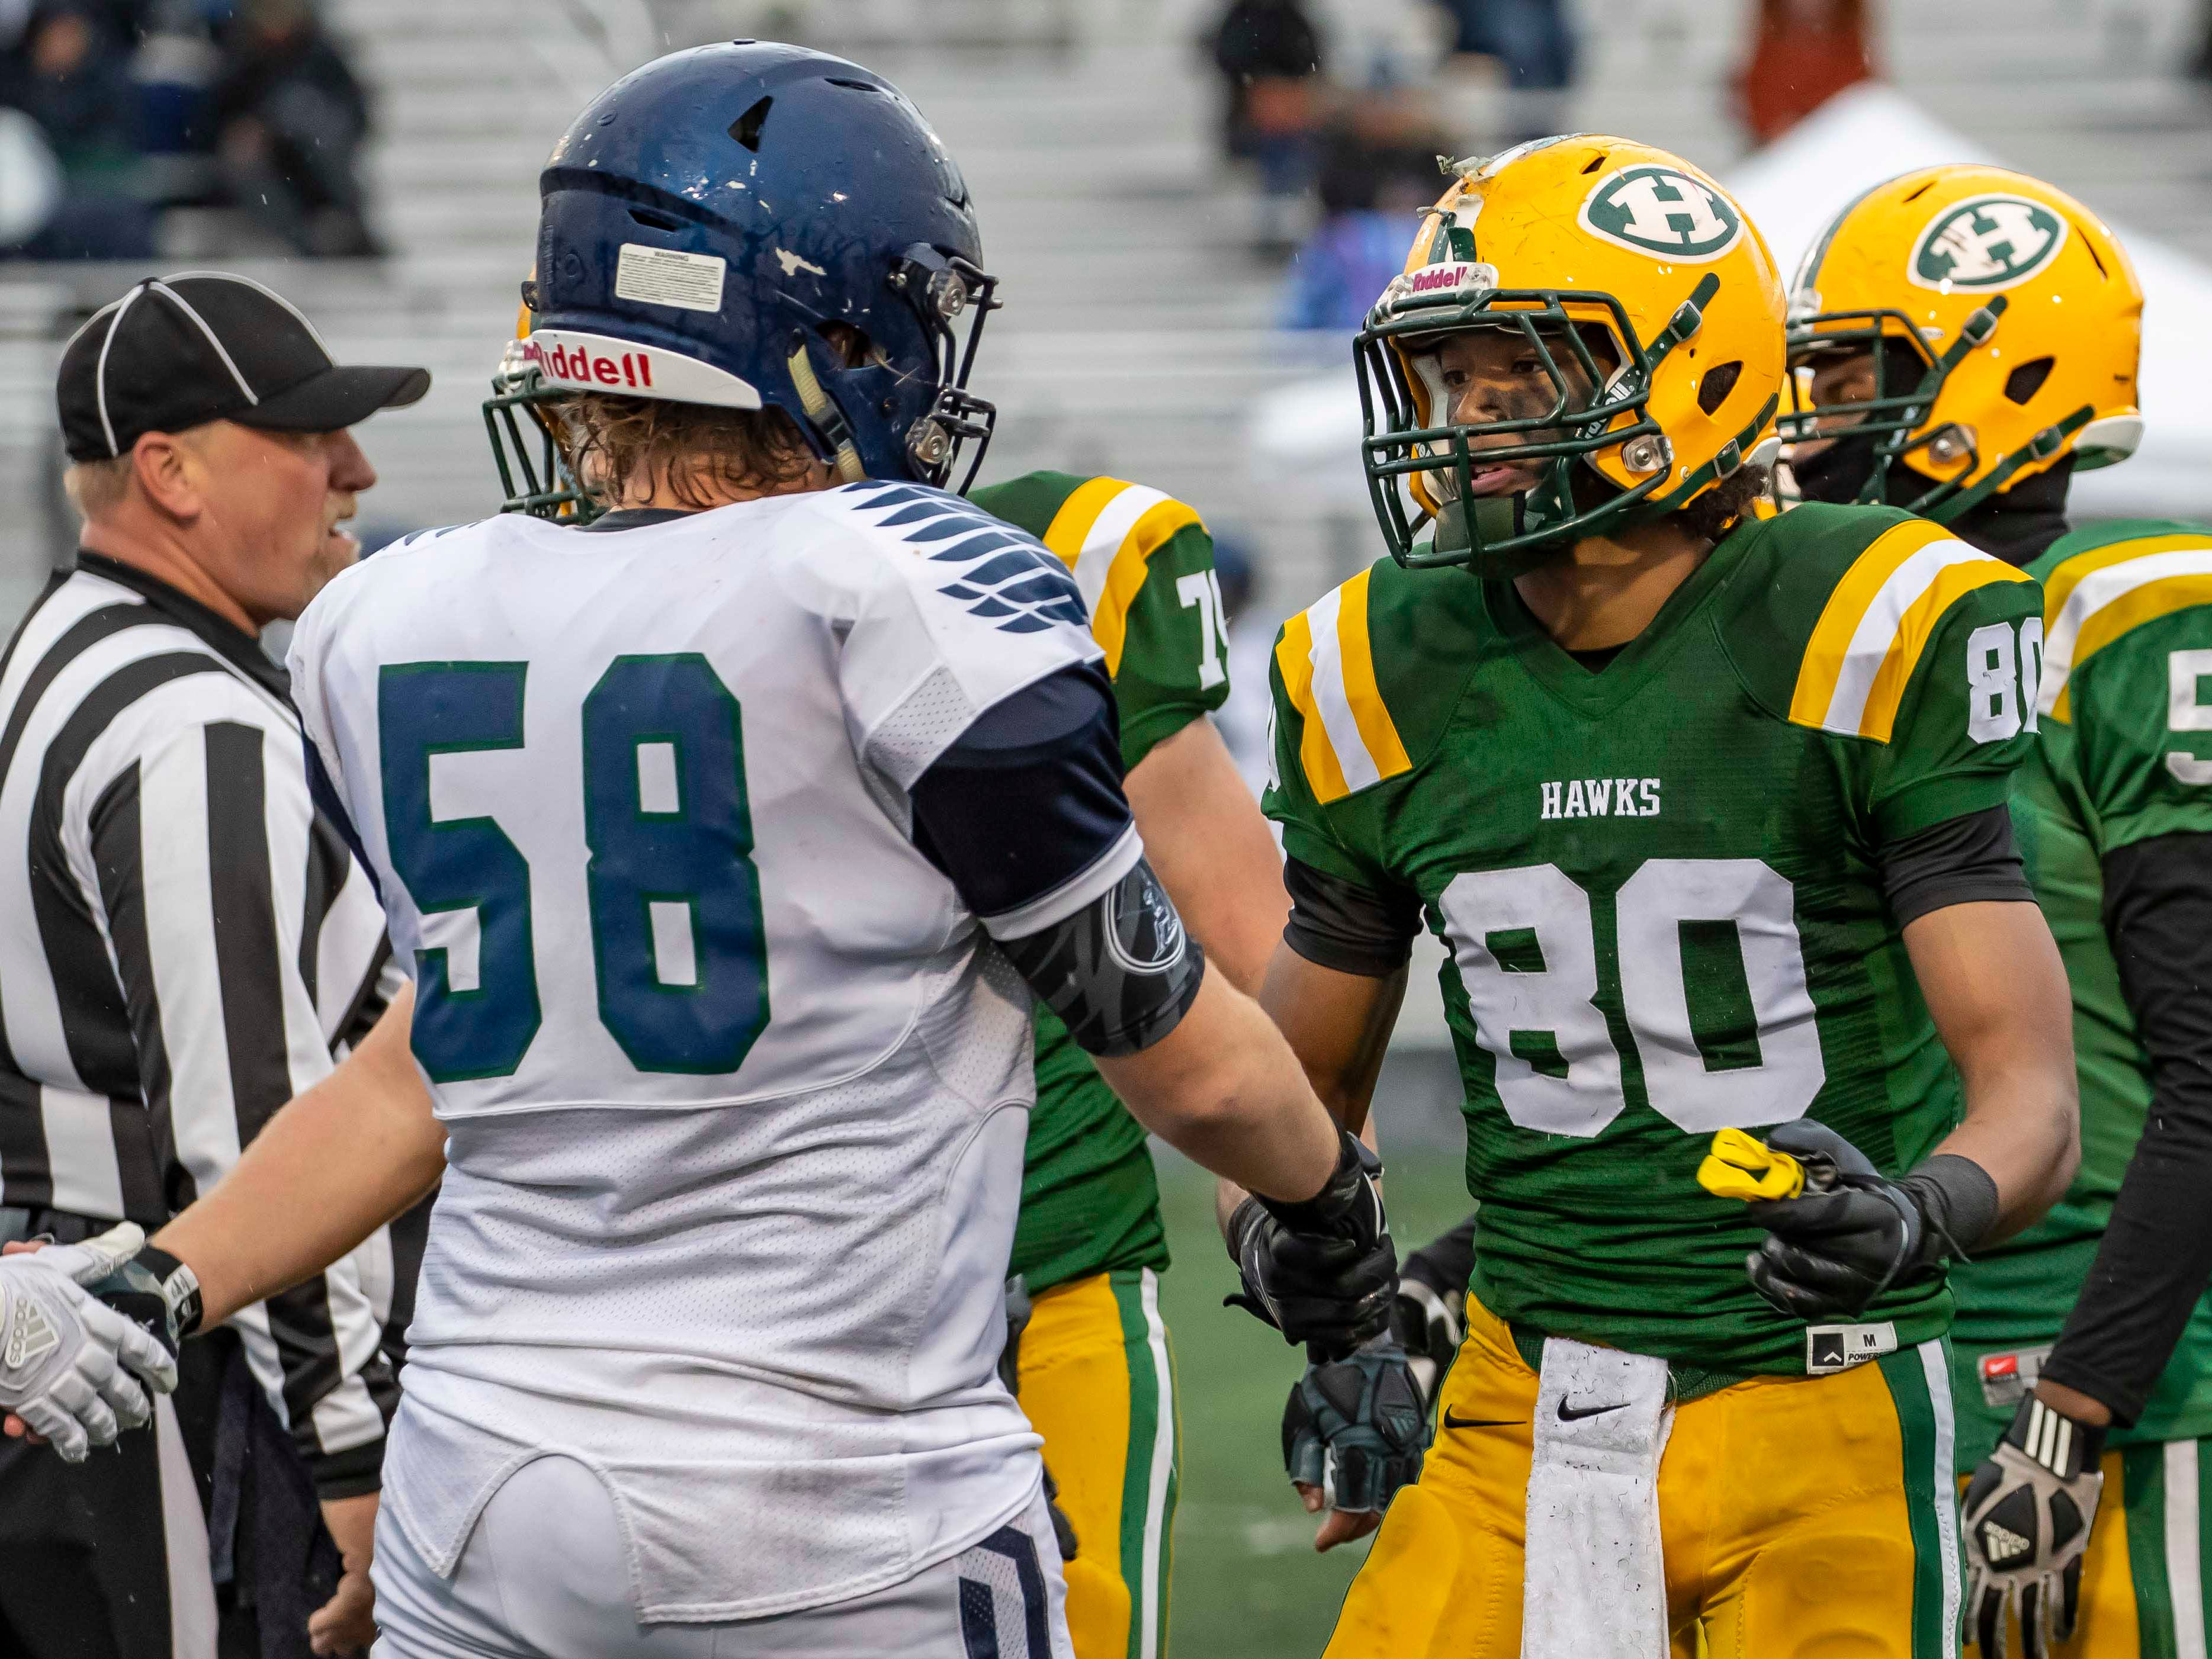 Trenton Ramsey (80) of Farmington Hills Harrison Hawks shakes hands with William Kerr (58) of Cranbrook Kingswood after Harrison's 24-10 playoff victory.